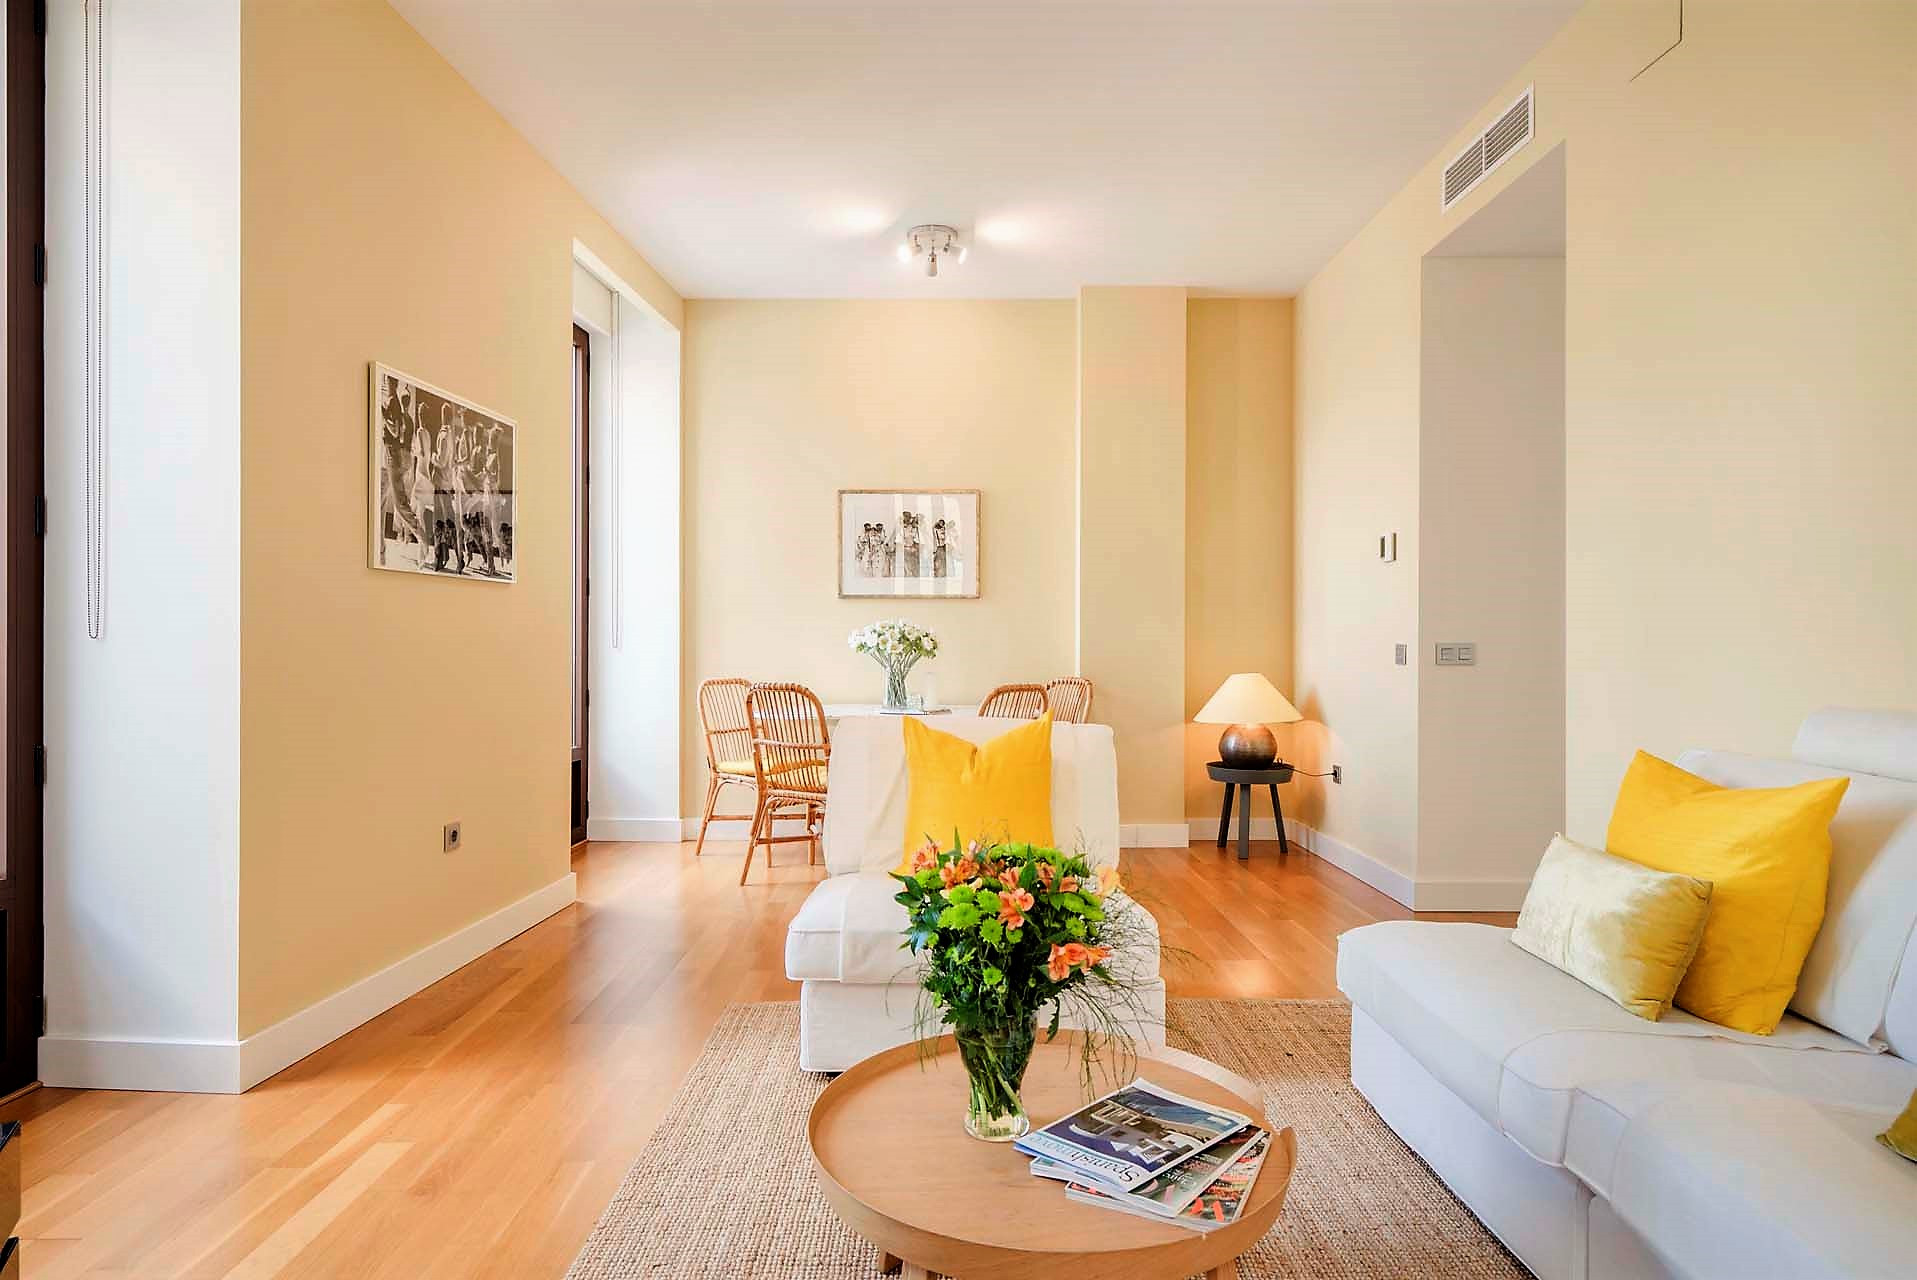 Amazing two-bedroom luxury apartment in Malaga city centre